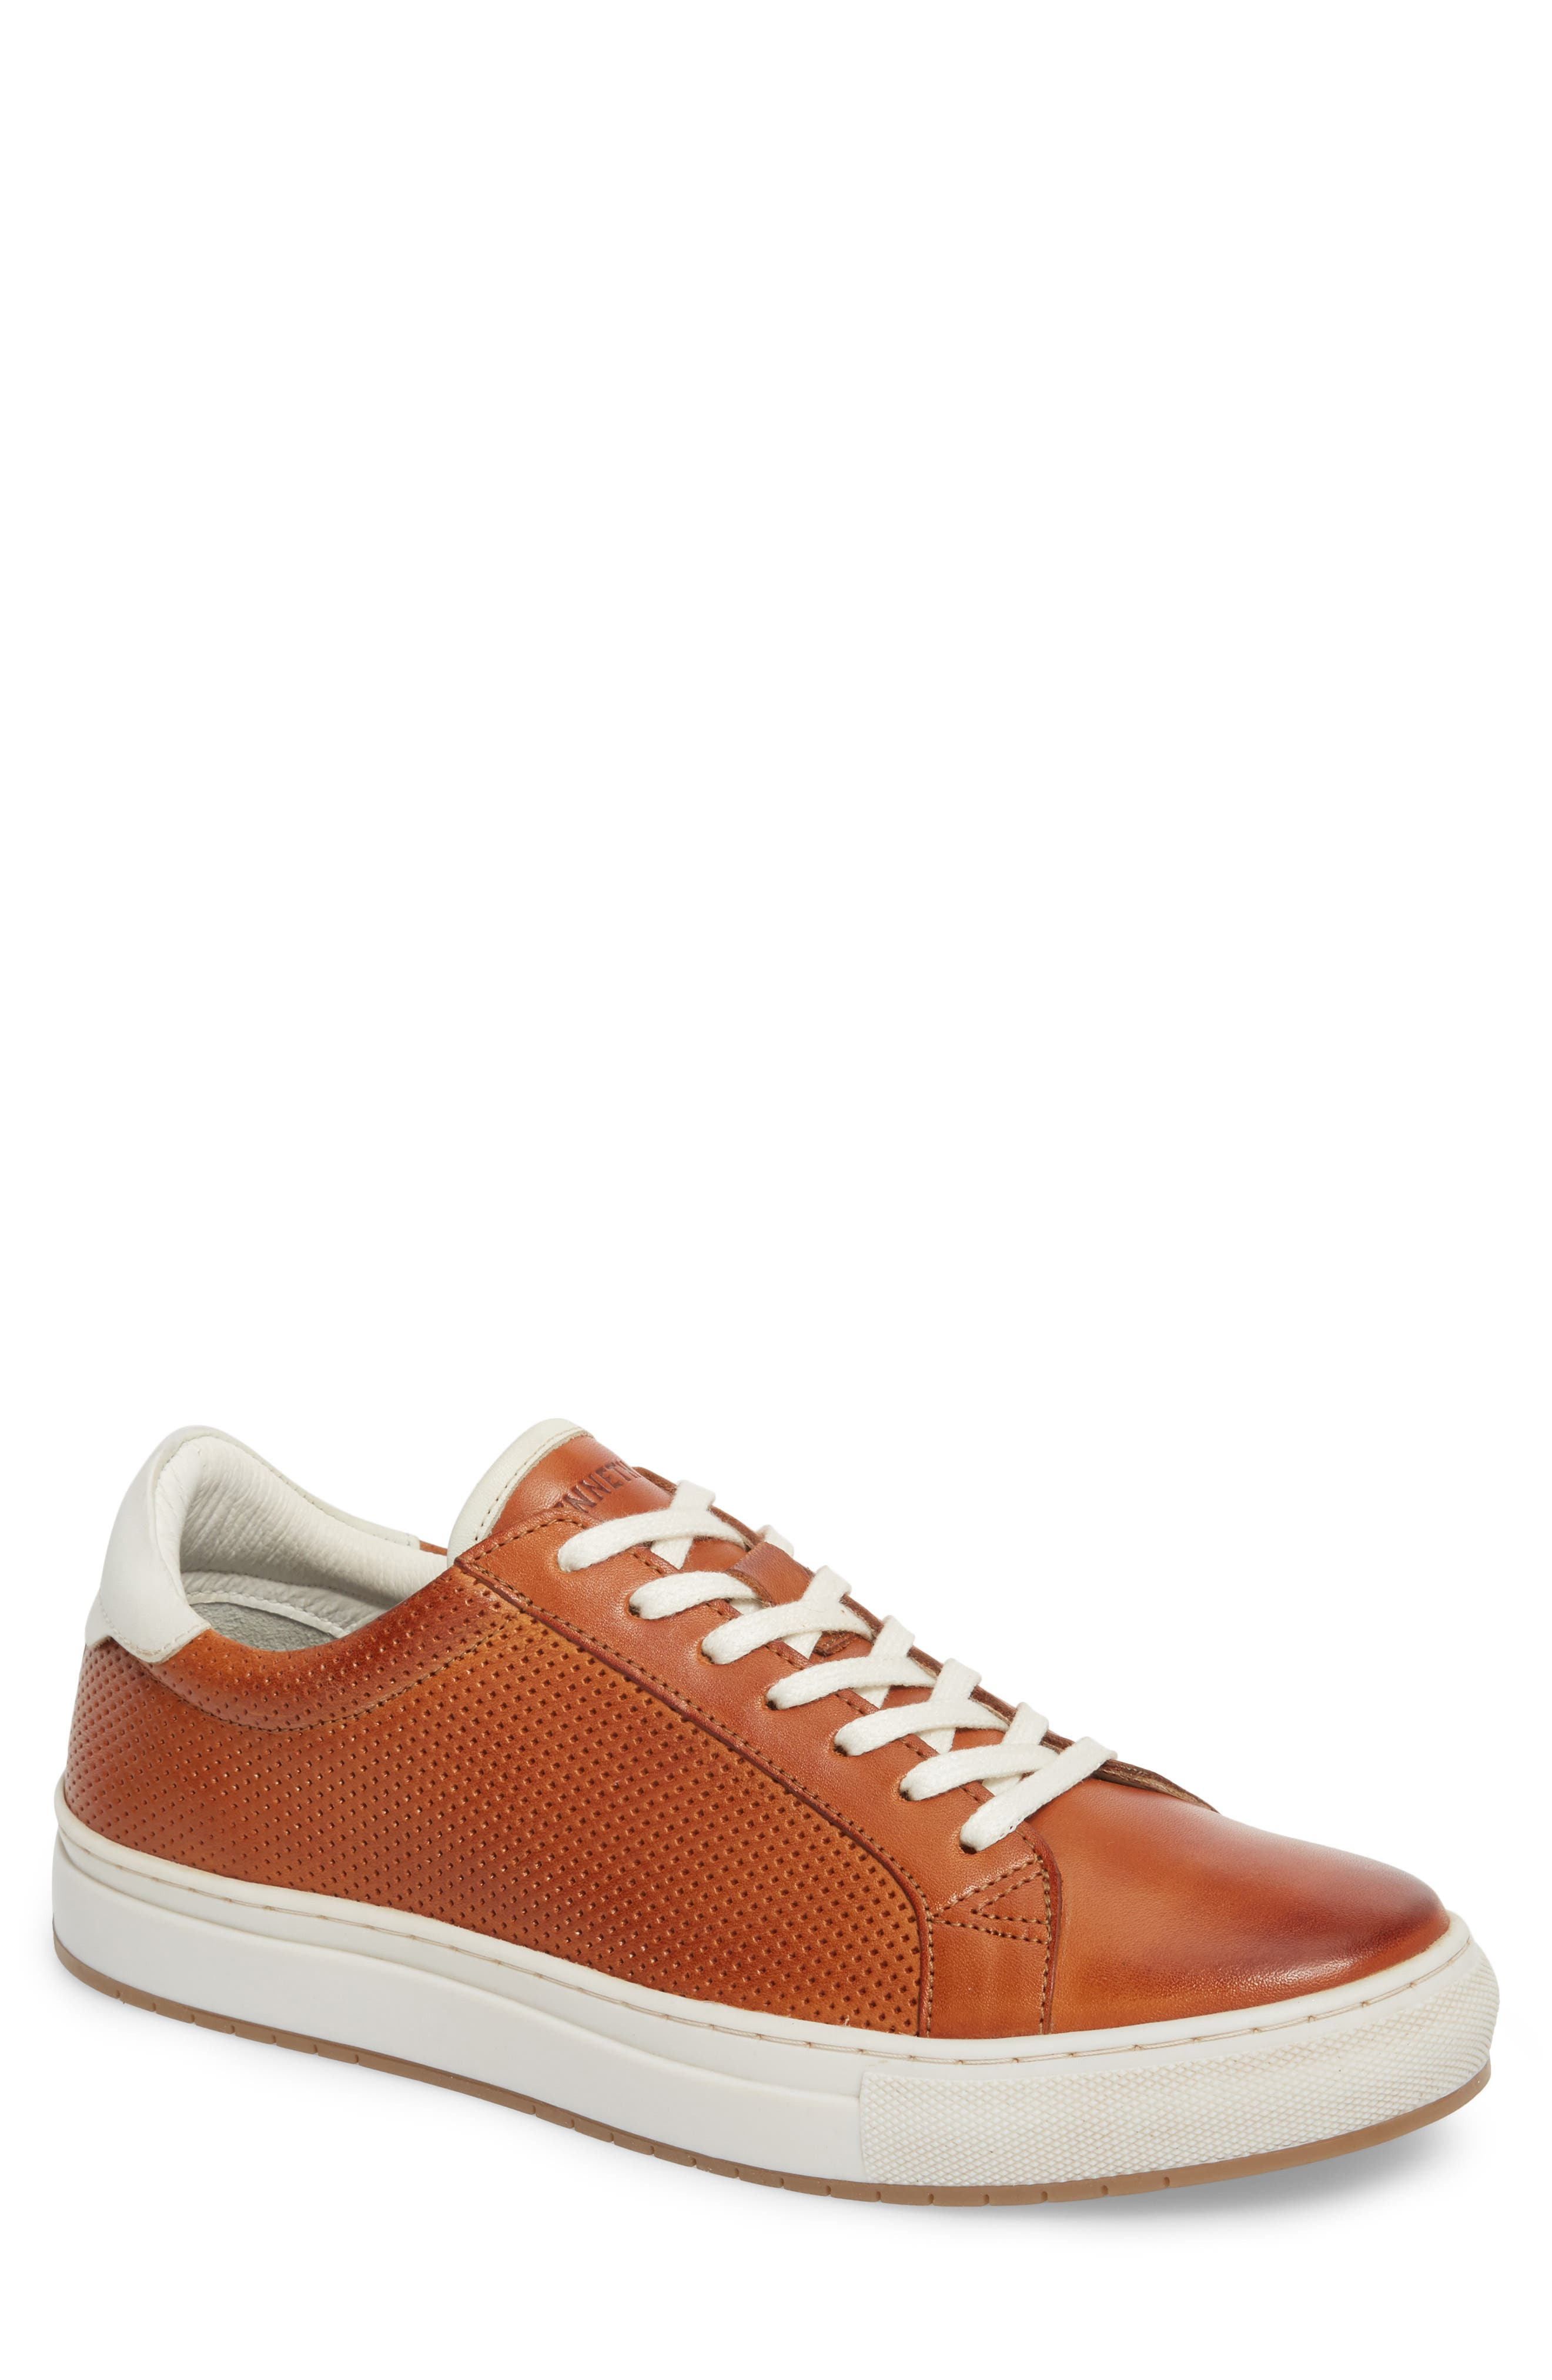 Don Embossed Lace-Up Sneaker,                         Main,                         color, Cognac Leather